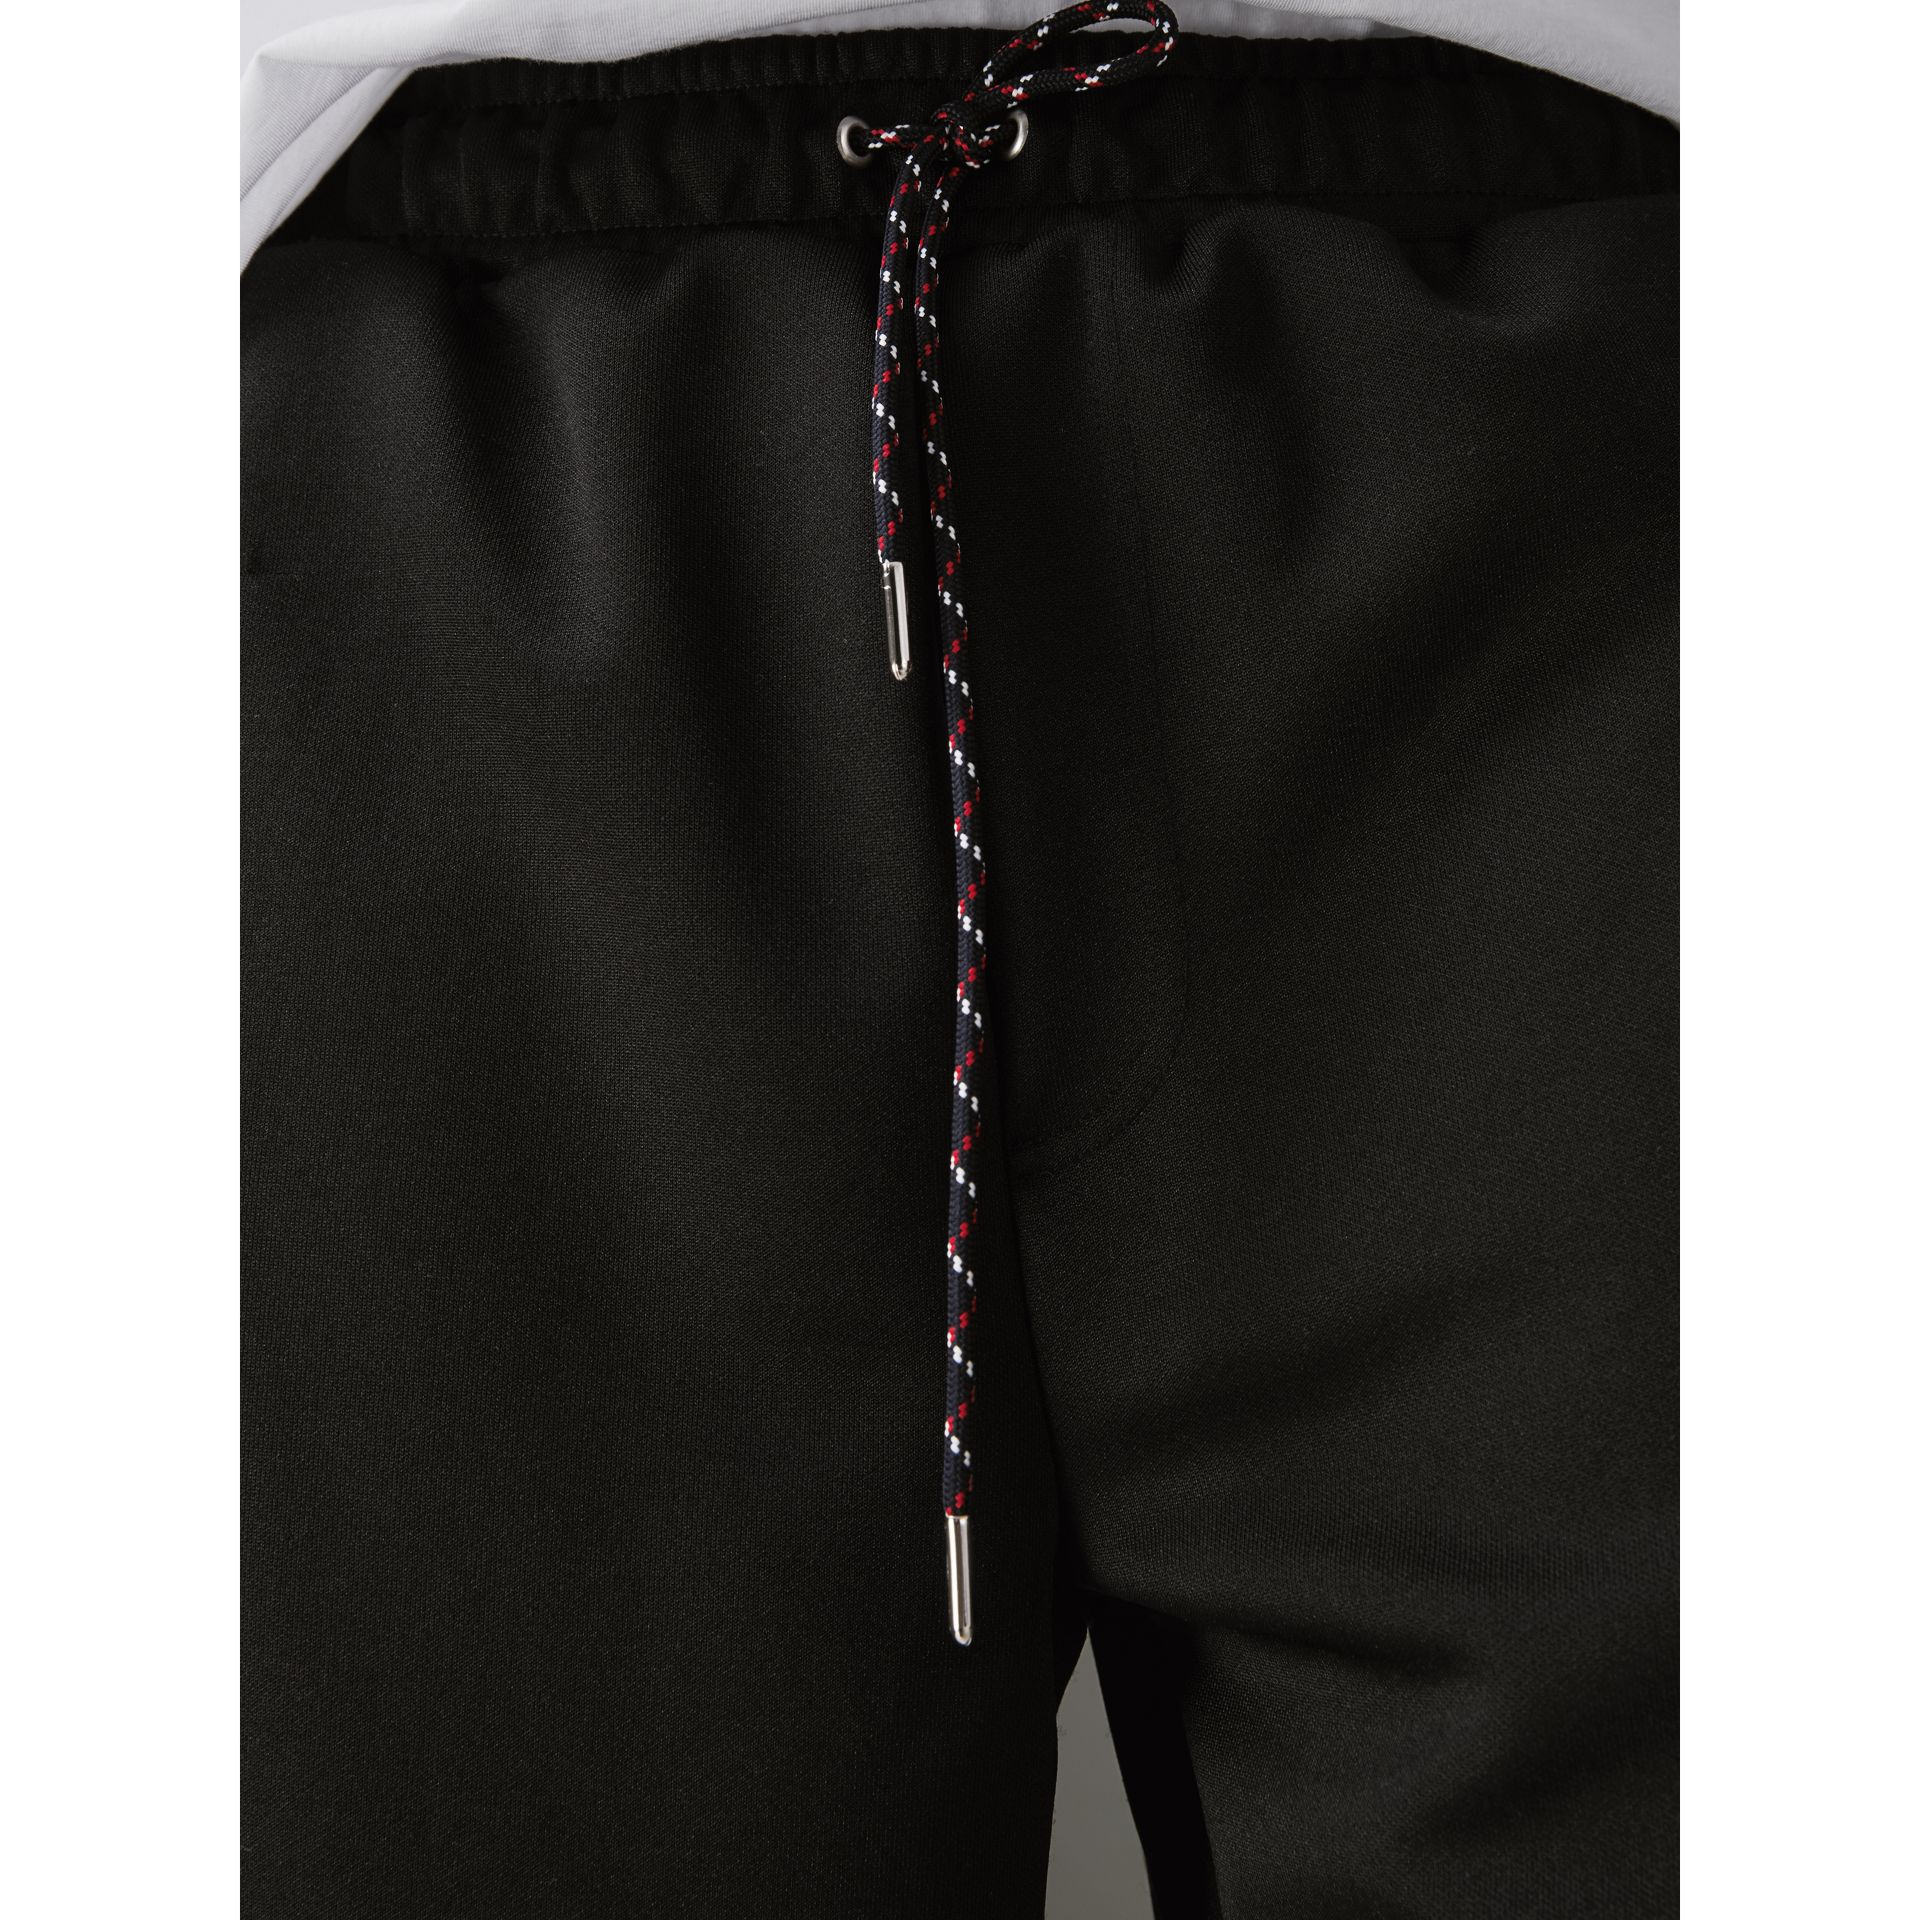 Cotton Blend Drawcord Shorts in Black - Men | Burberry - gallery image 1